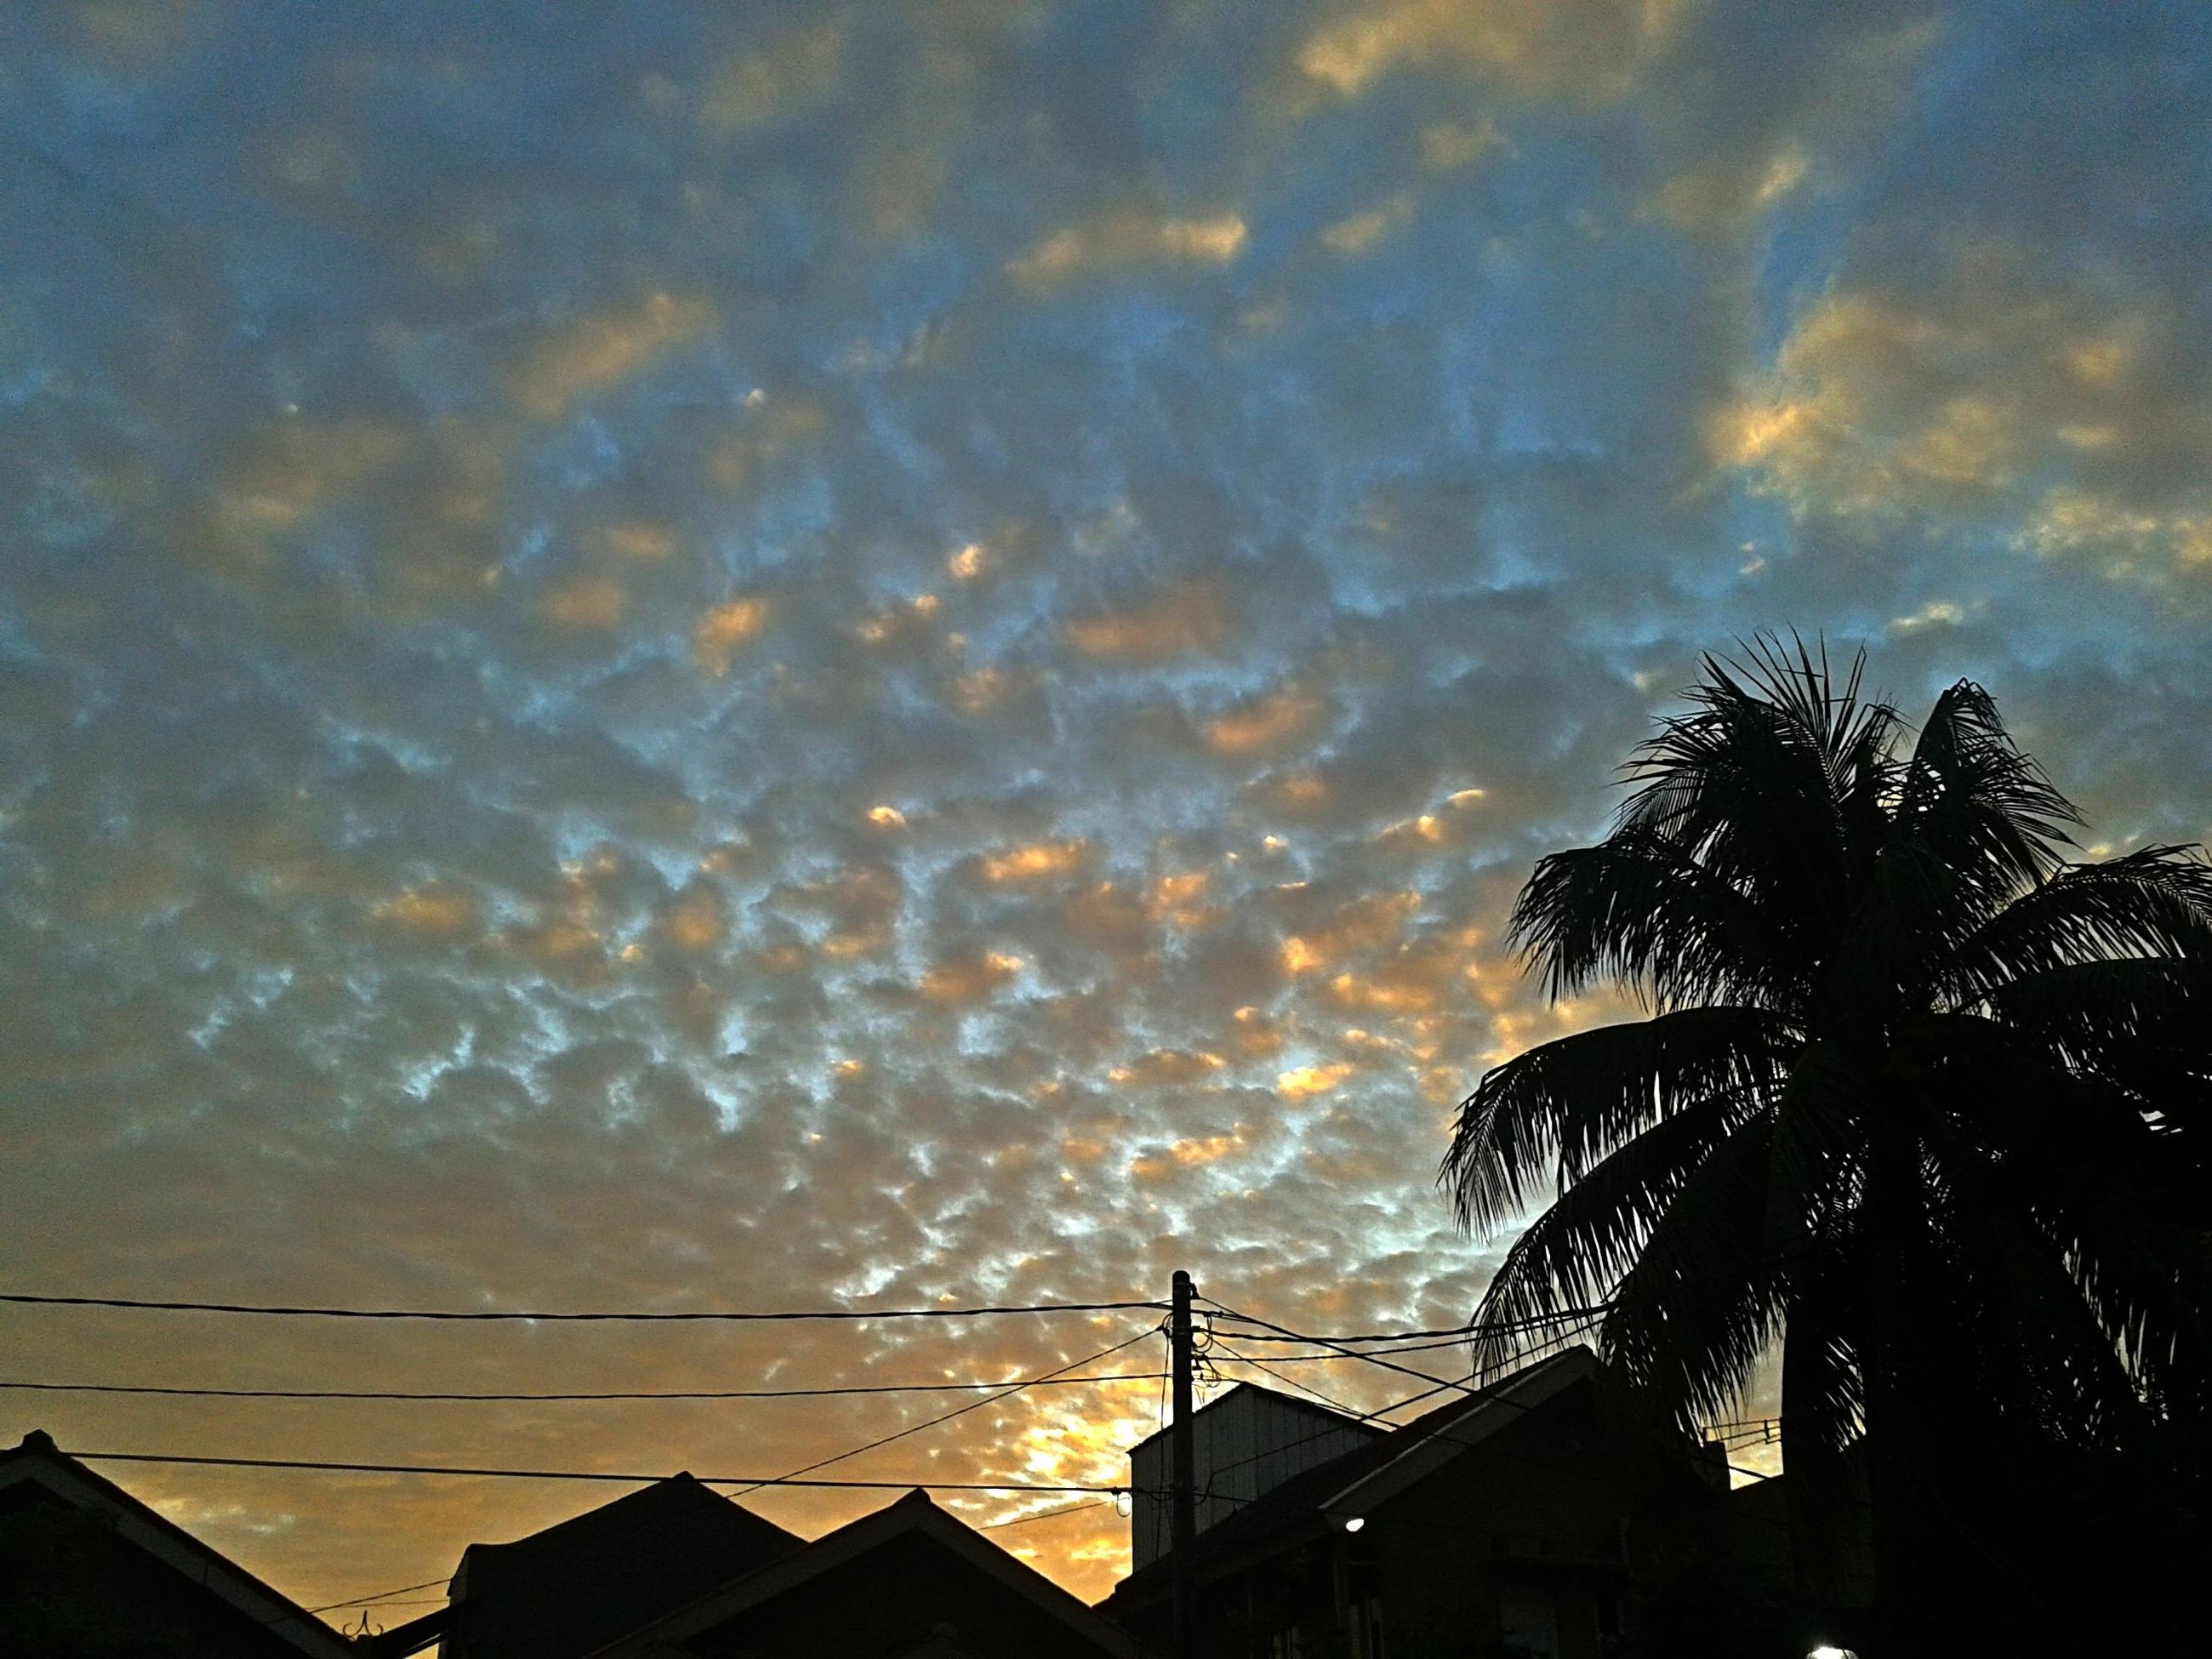 architecture, building exterior, built structure, low angle view, sky, silhouette, house, cloud - sky, tree, high section, sunset, residential structure, power line, cloudy, residential building, building, cloud, palm tree, dusk, outdoors